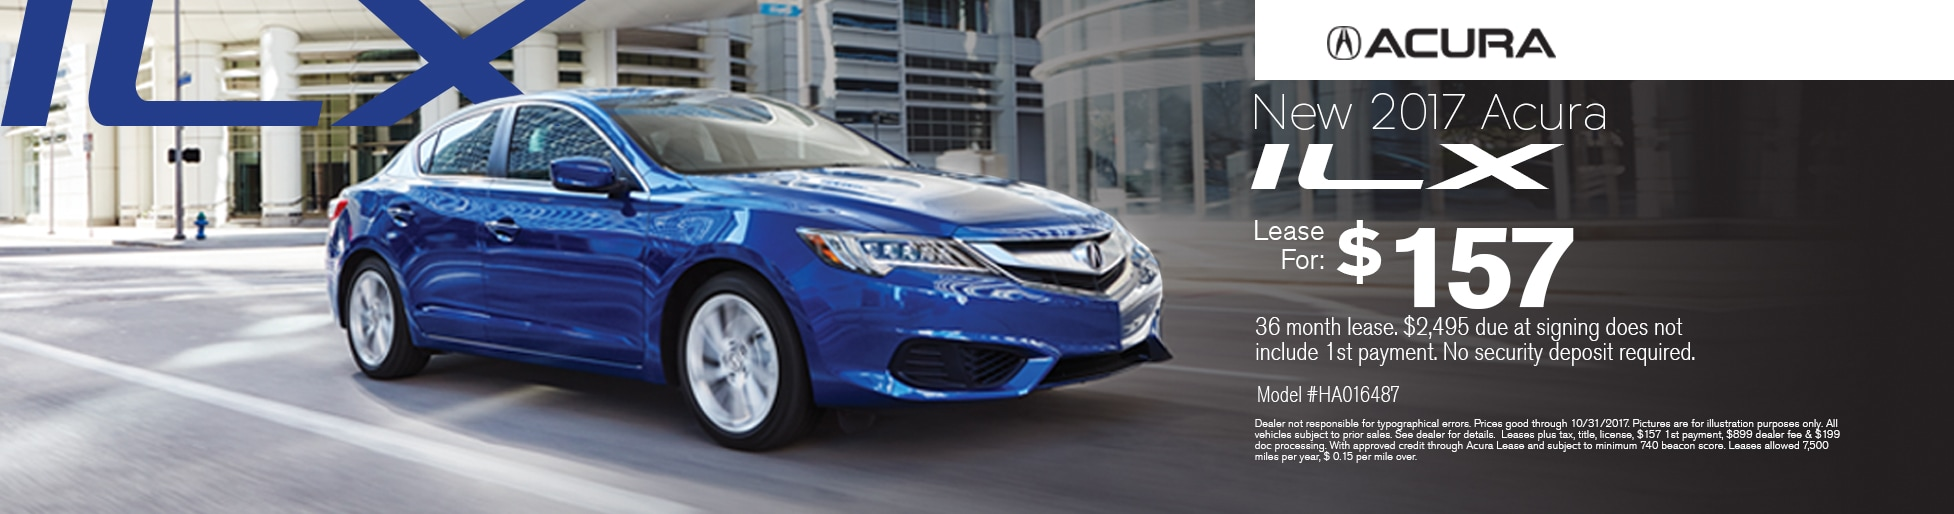 Acura ILX West Palm Beach